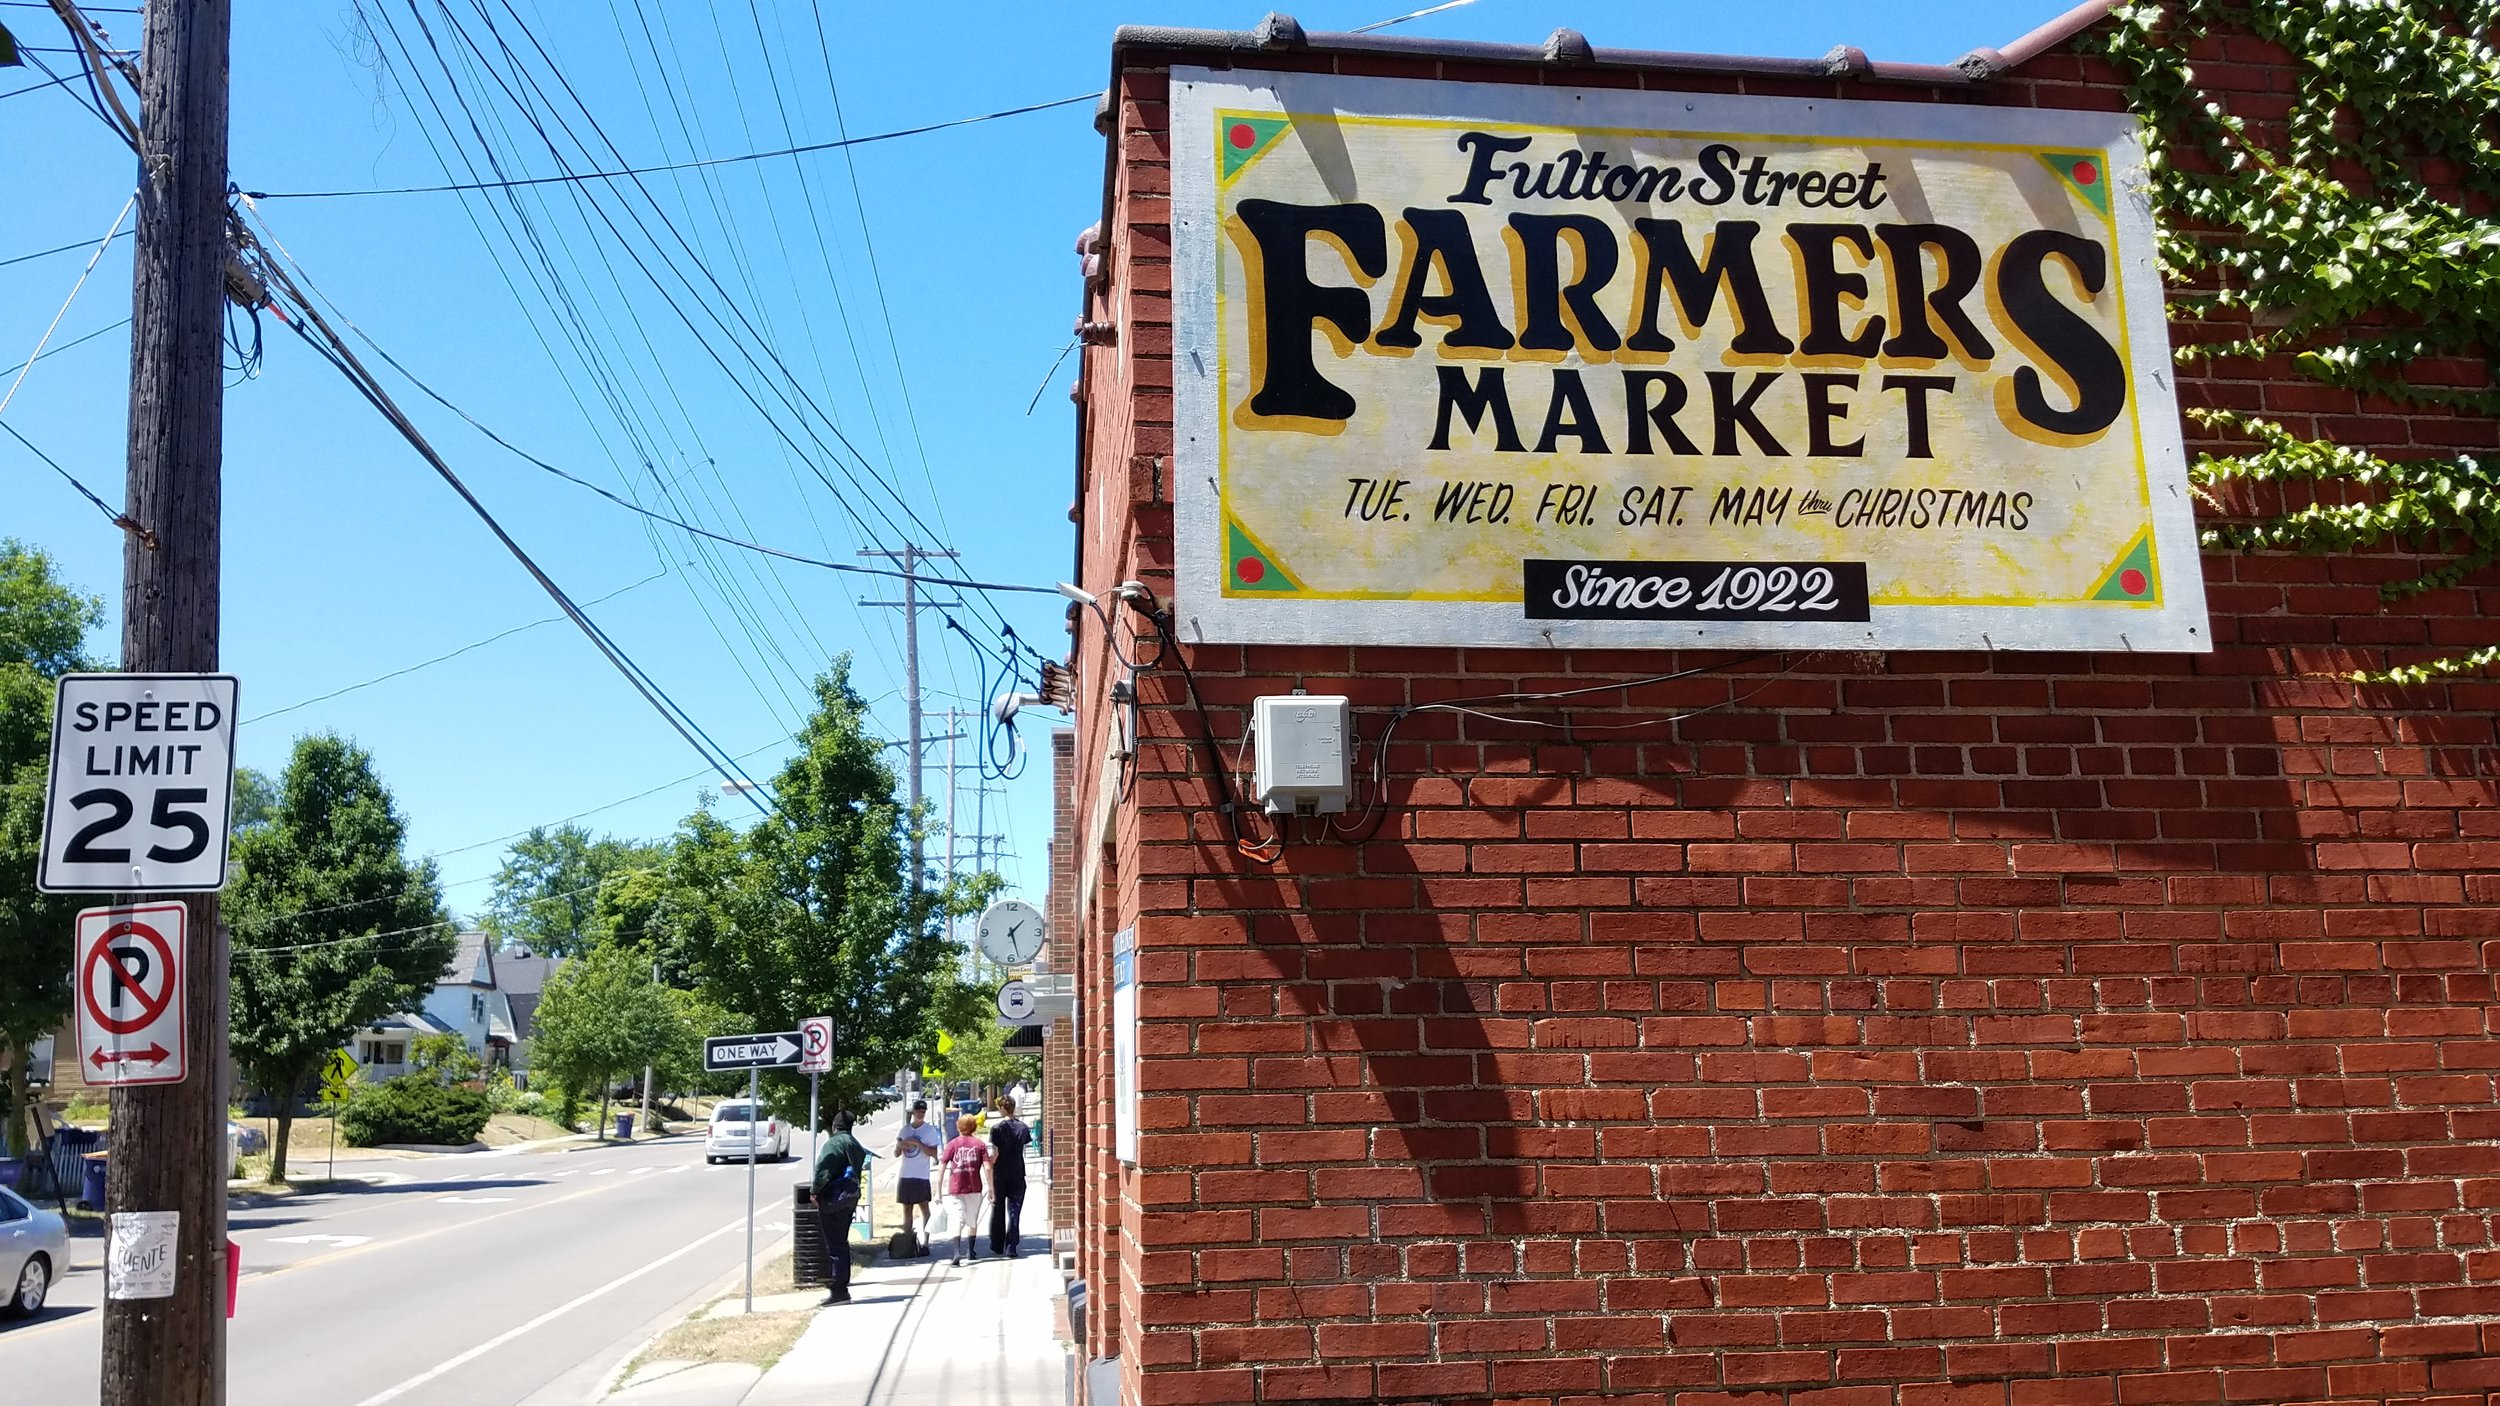 The Fulton Street Farmers Market has been going strong since 1922